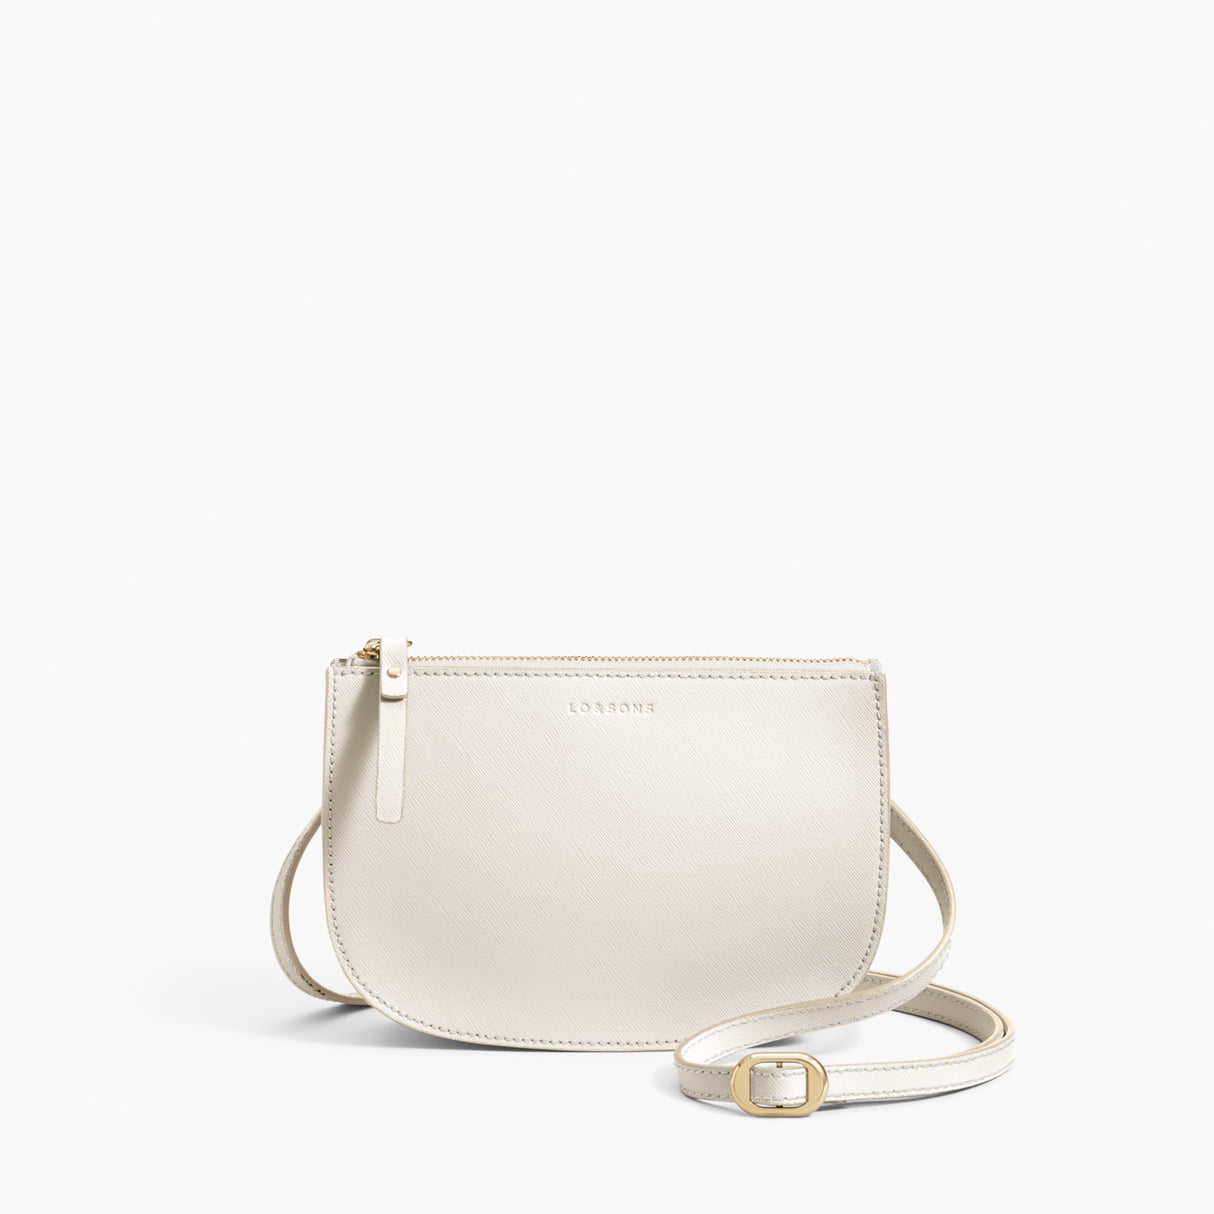 Front Crossbody - The Waverley 2 - Saffiano Leather - Ivory / Gold / Camel - Crossbody - Lo & Sons